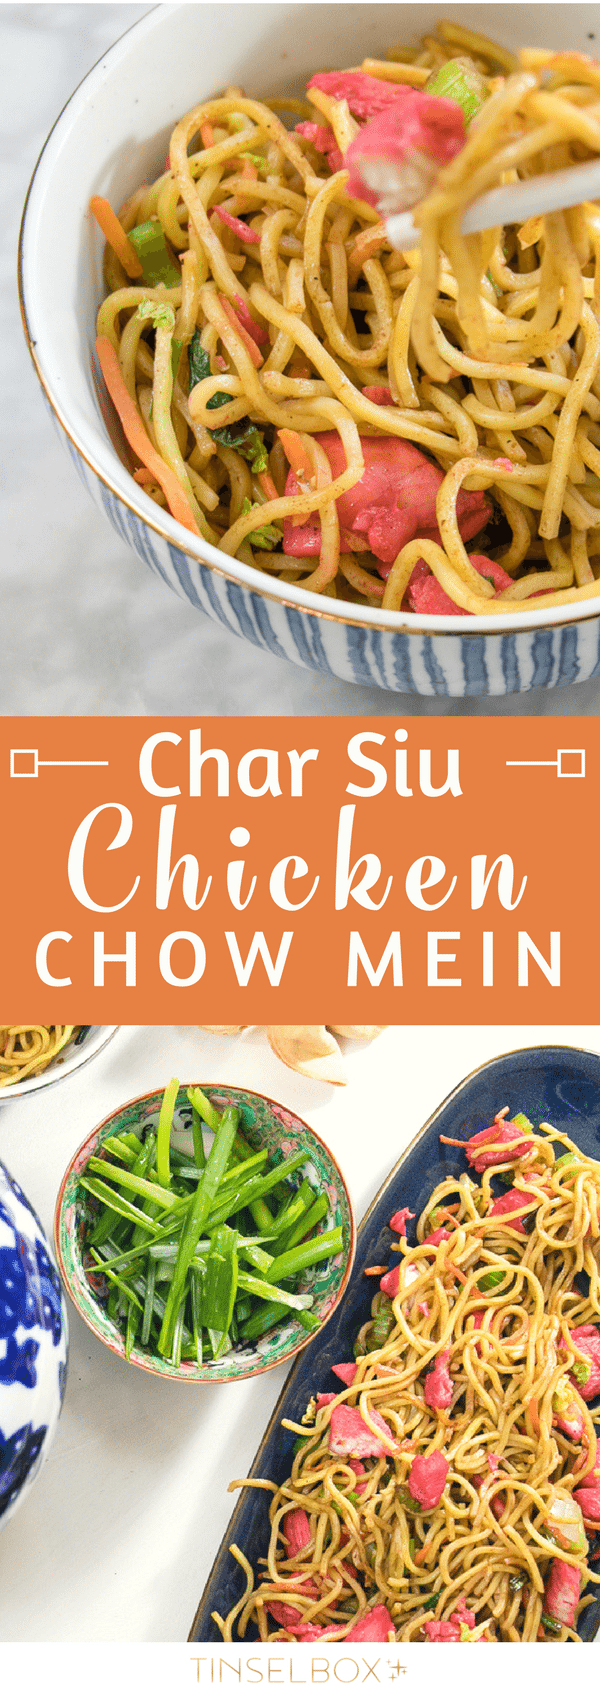 You will love this authentic Char Siu Chinese Chicken Chow Mein Recipe! It is so simple to make, and the barbecue flavors are restaurant quality. These silky soft noodles with tender flavorful Chinese chicken are utterly scrumptious. #sponsored by @worldmarket #worldmarkettribe